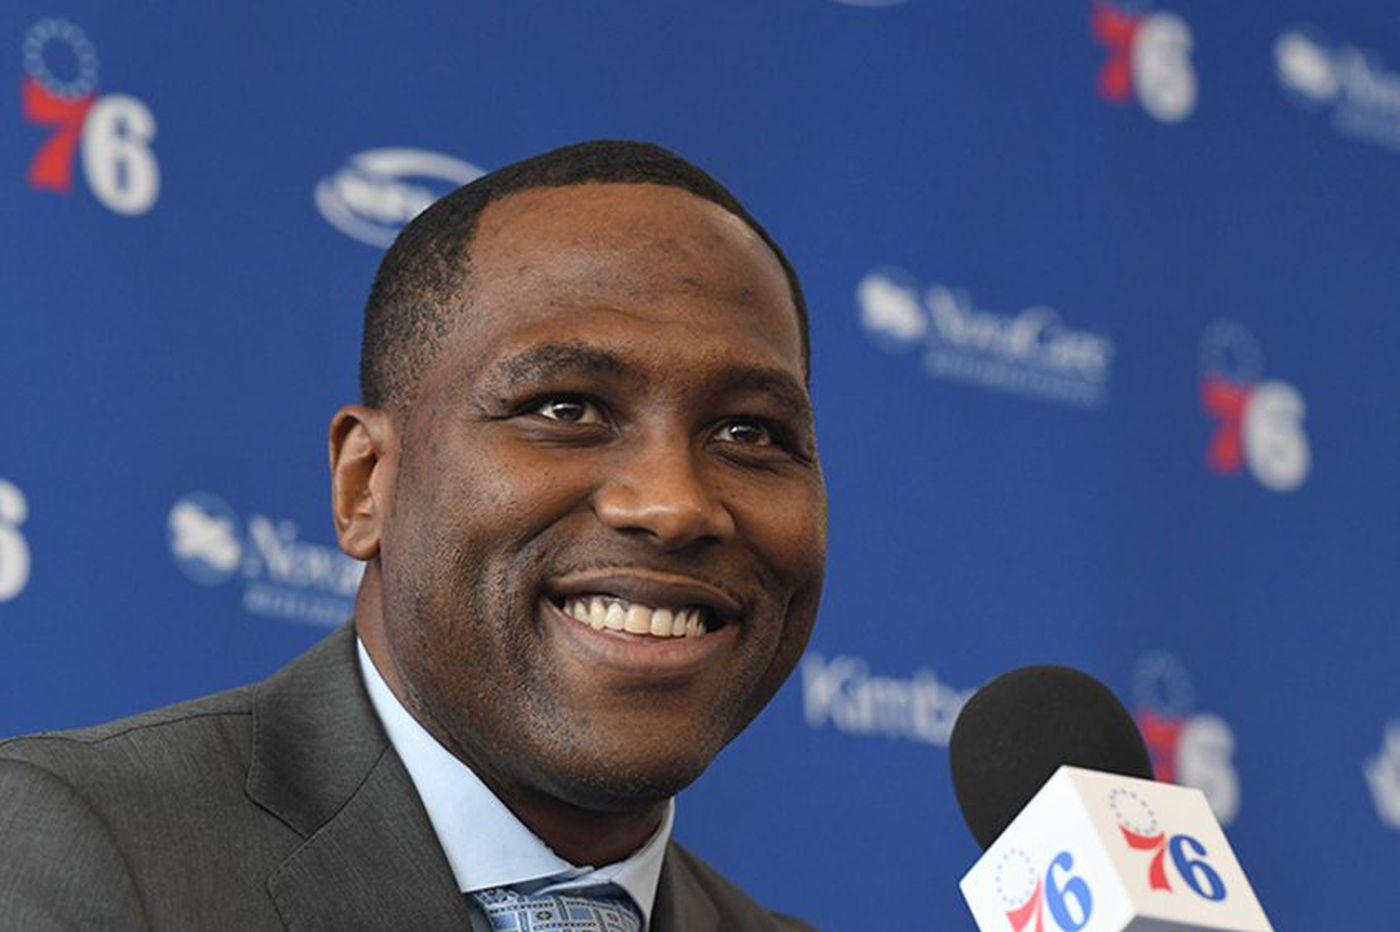 One of the NBA's original power brokers sees the Sixers as a free agent destination with Elton Brand as GM | David Murphy